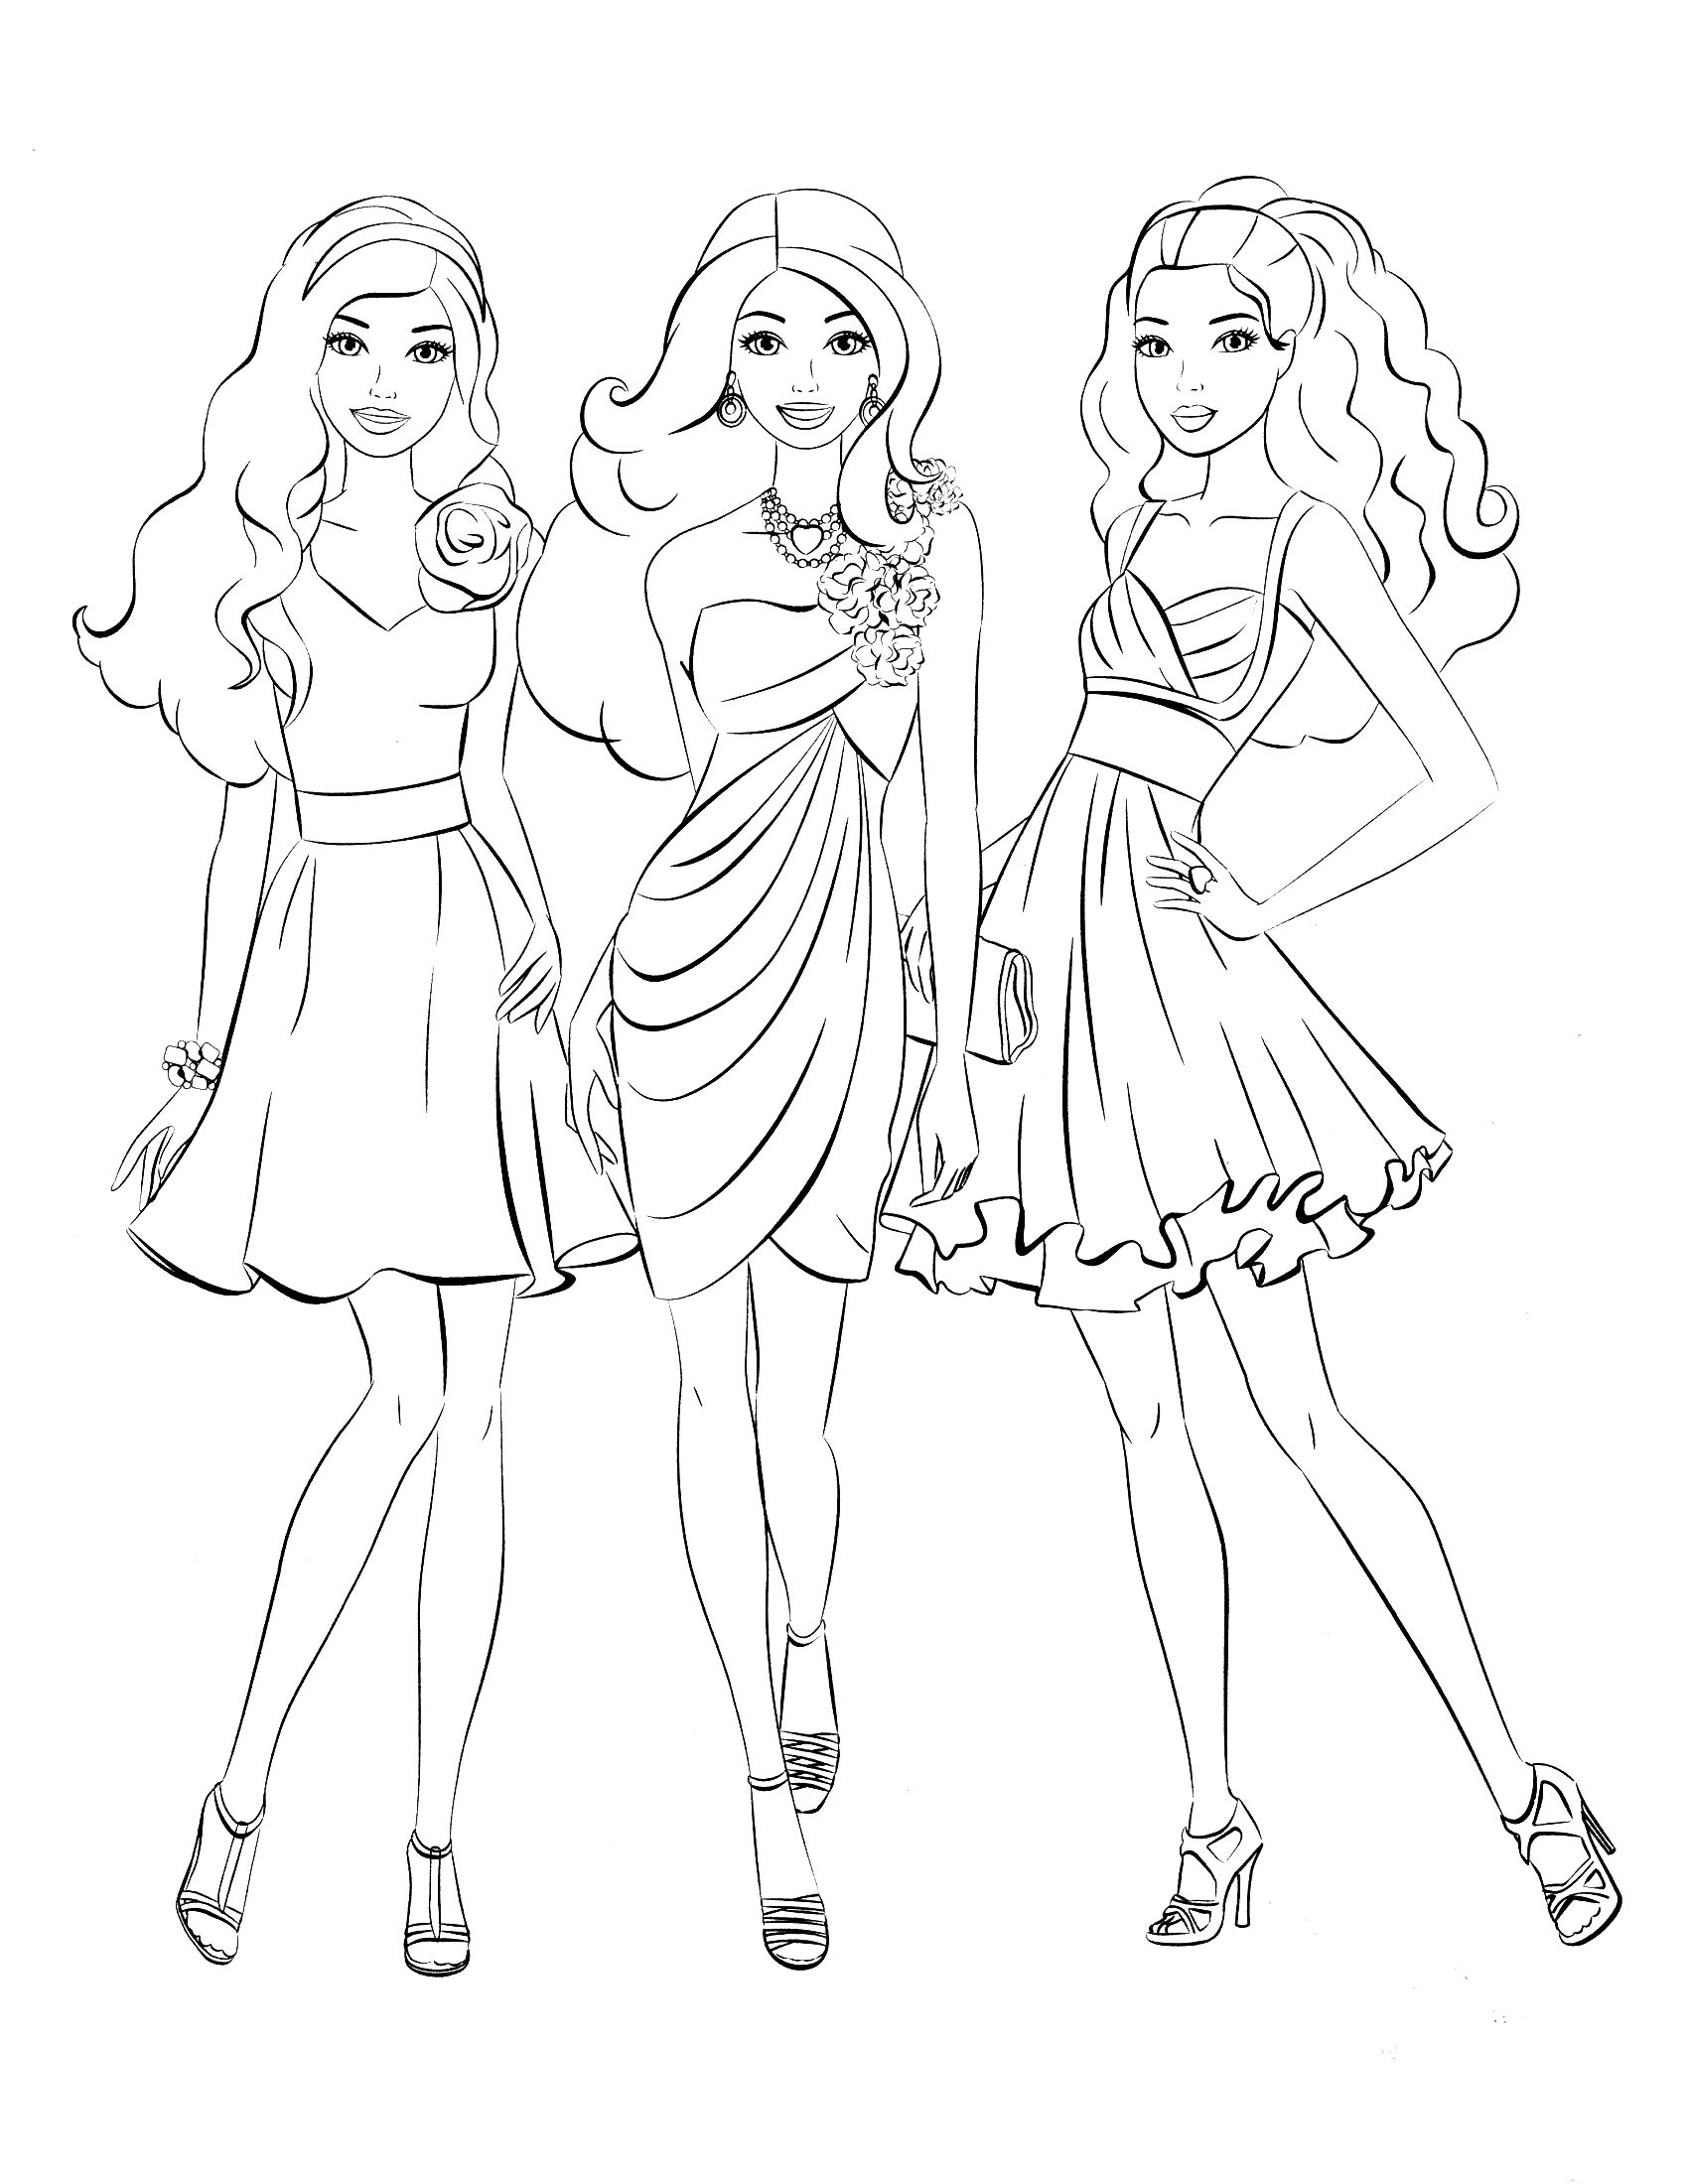 coloring pages barbie   Pesquisa Google | Omalovánky | Pinterest